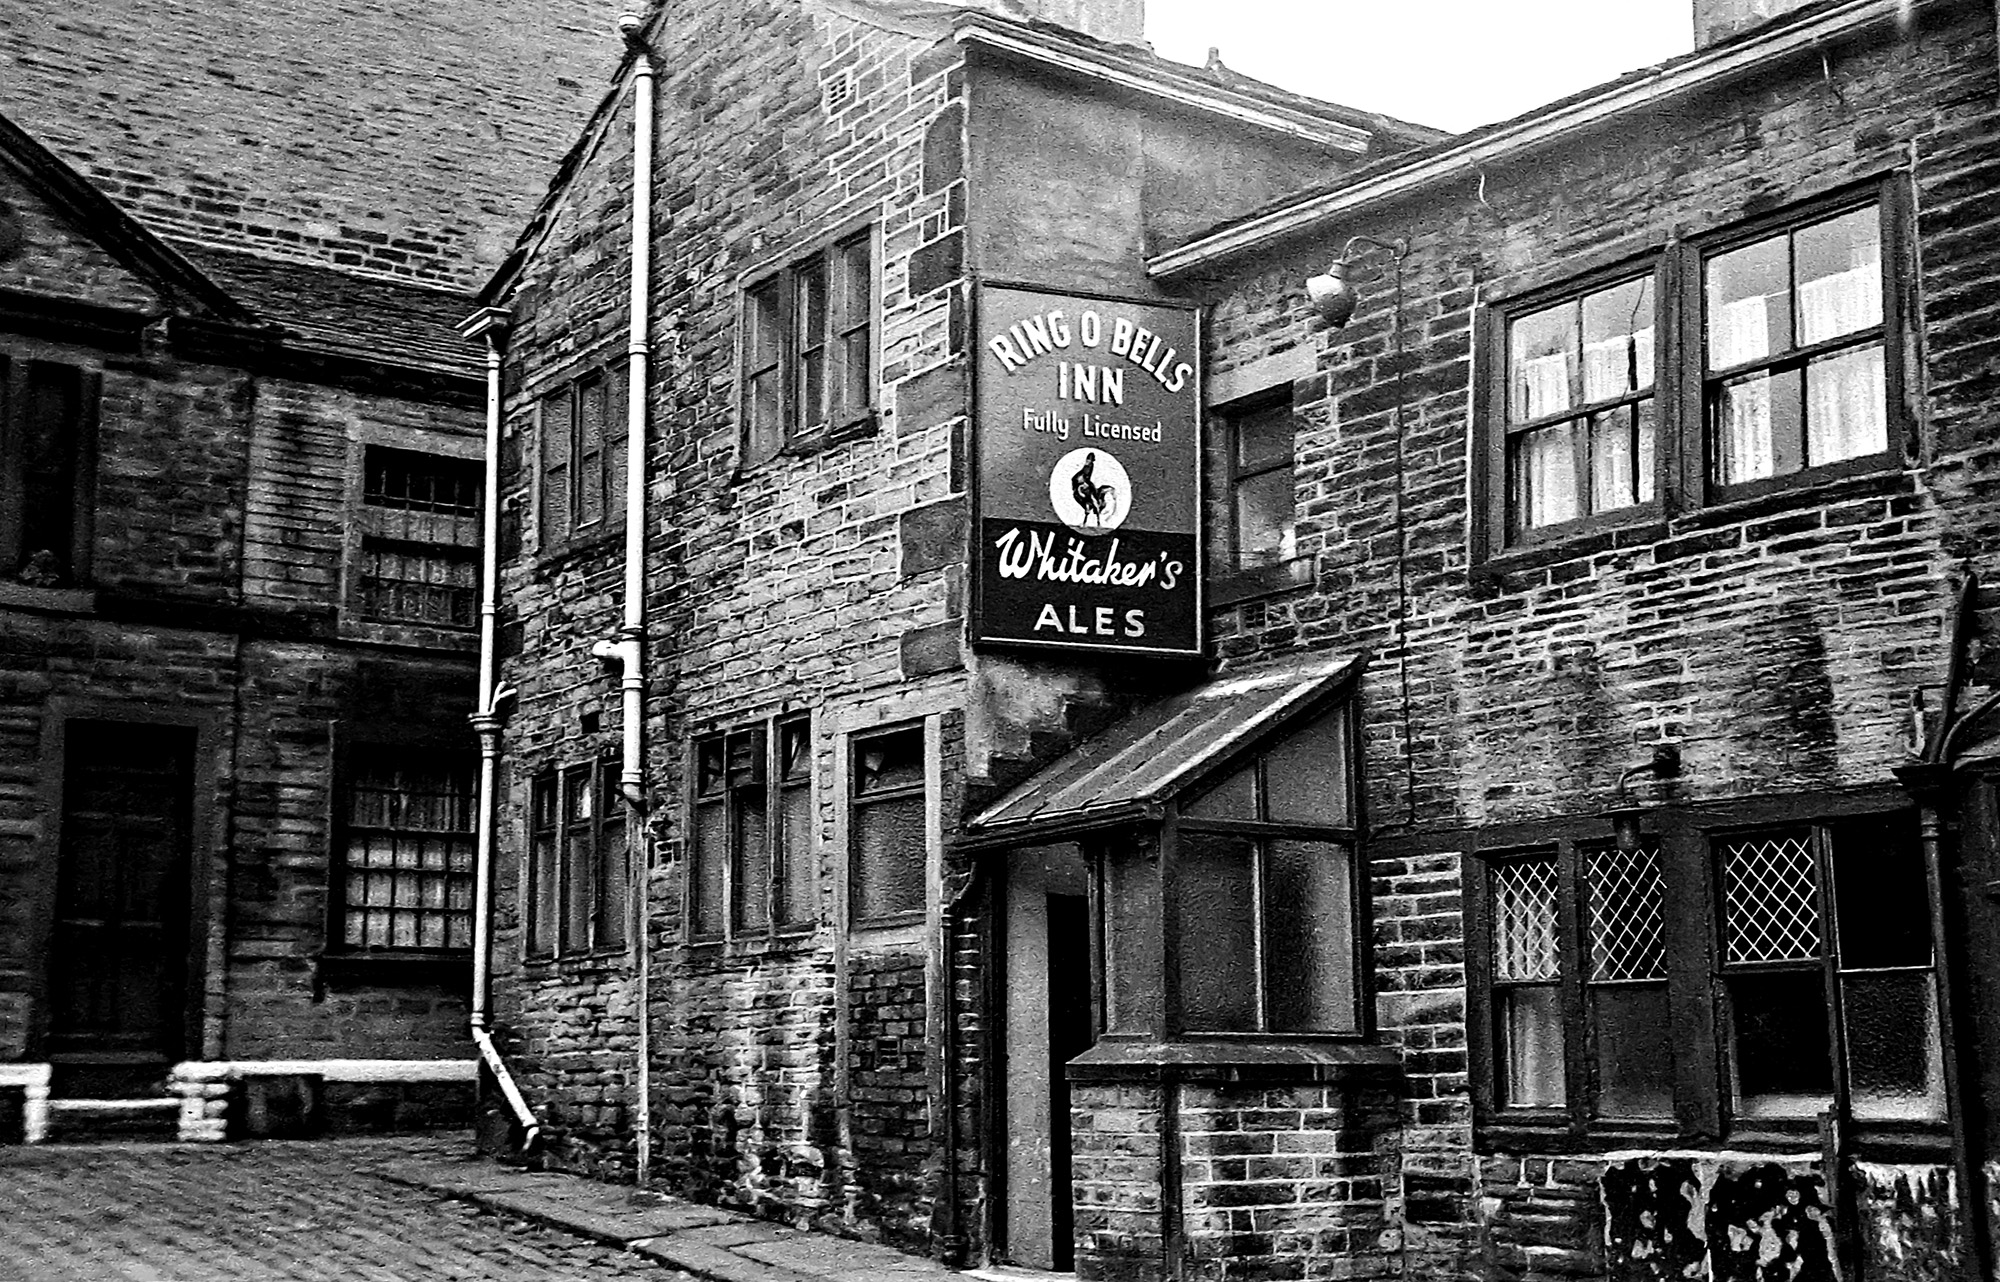 Ring O Bells Inn, Halifax